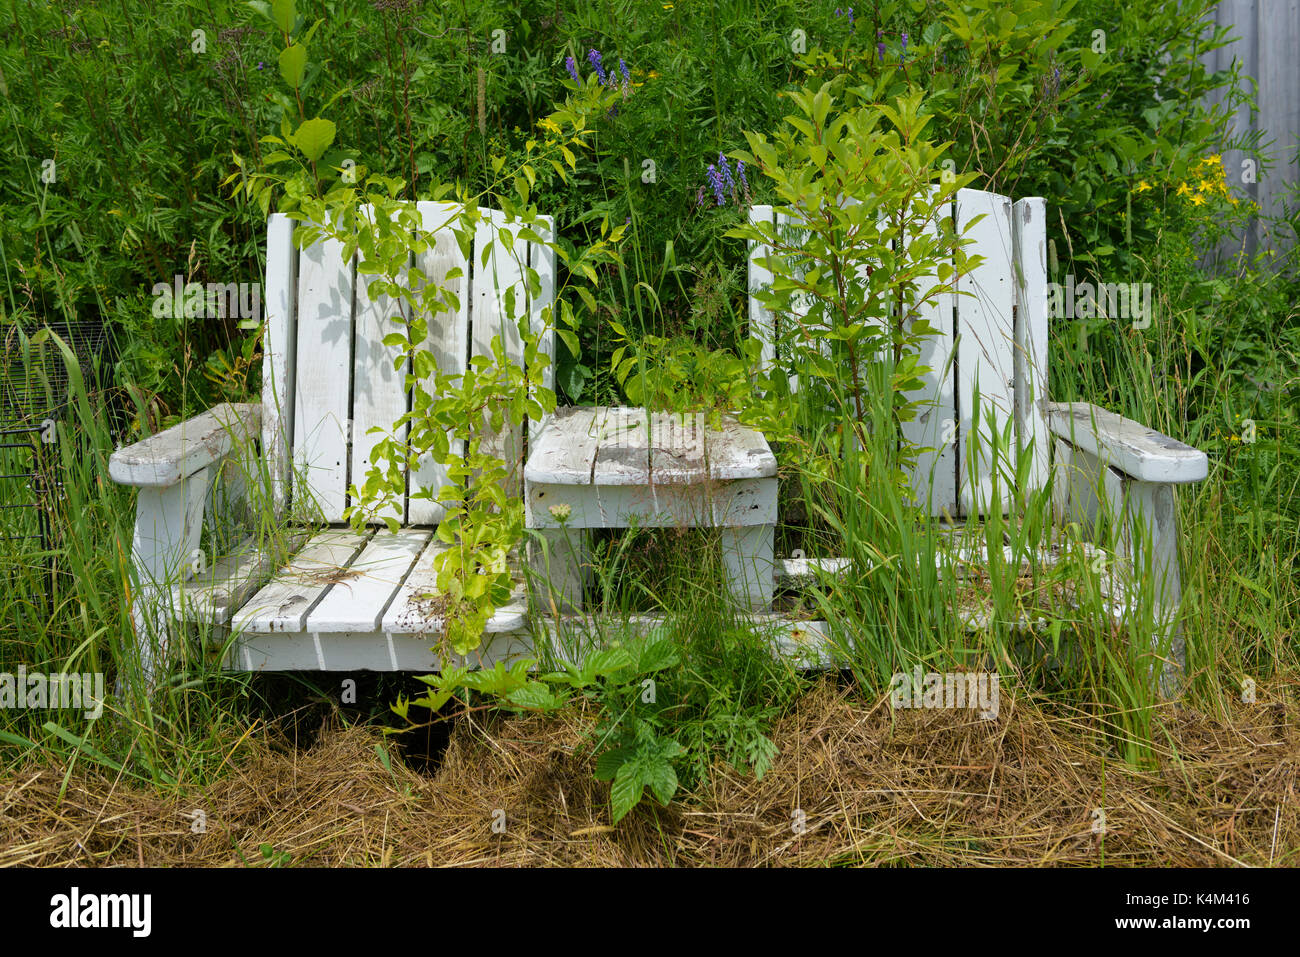 Old forgotten adirondack chairs. - Stock Image